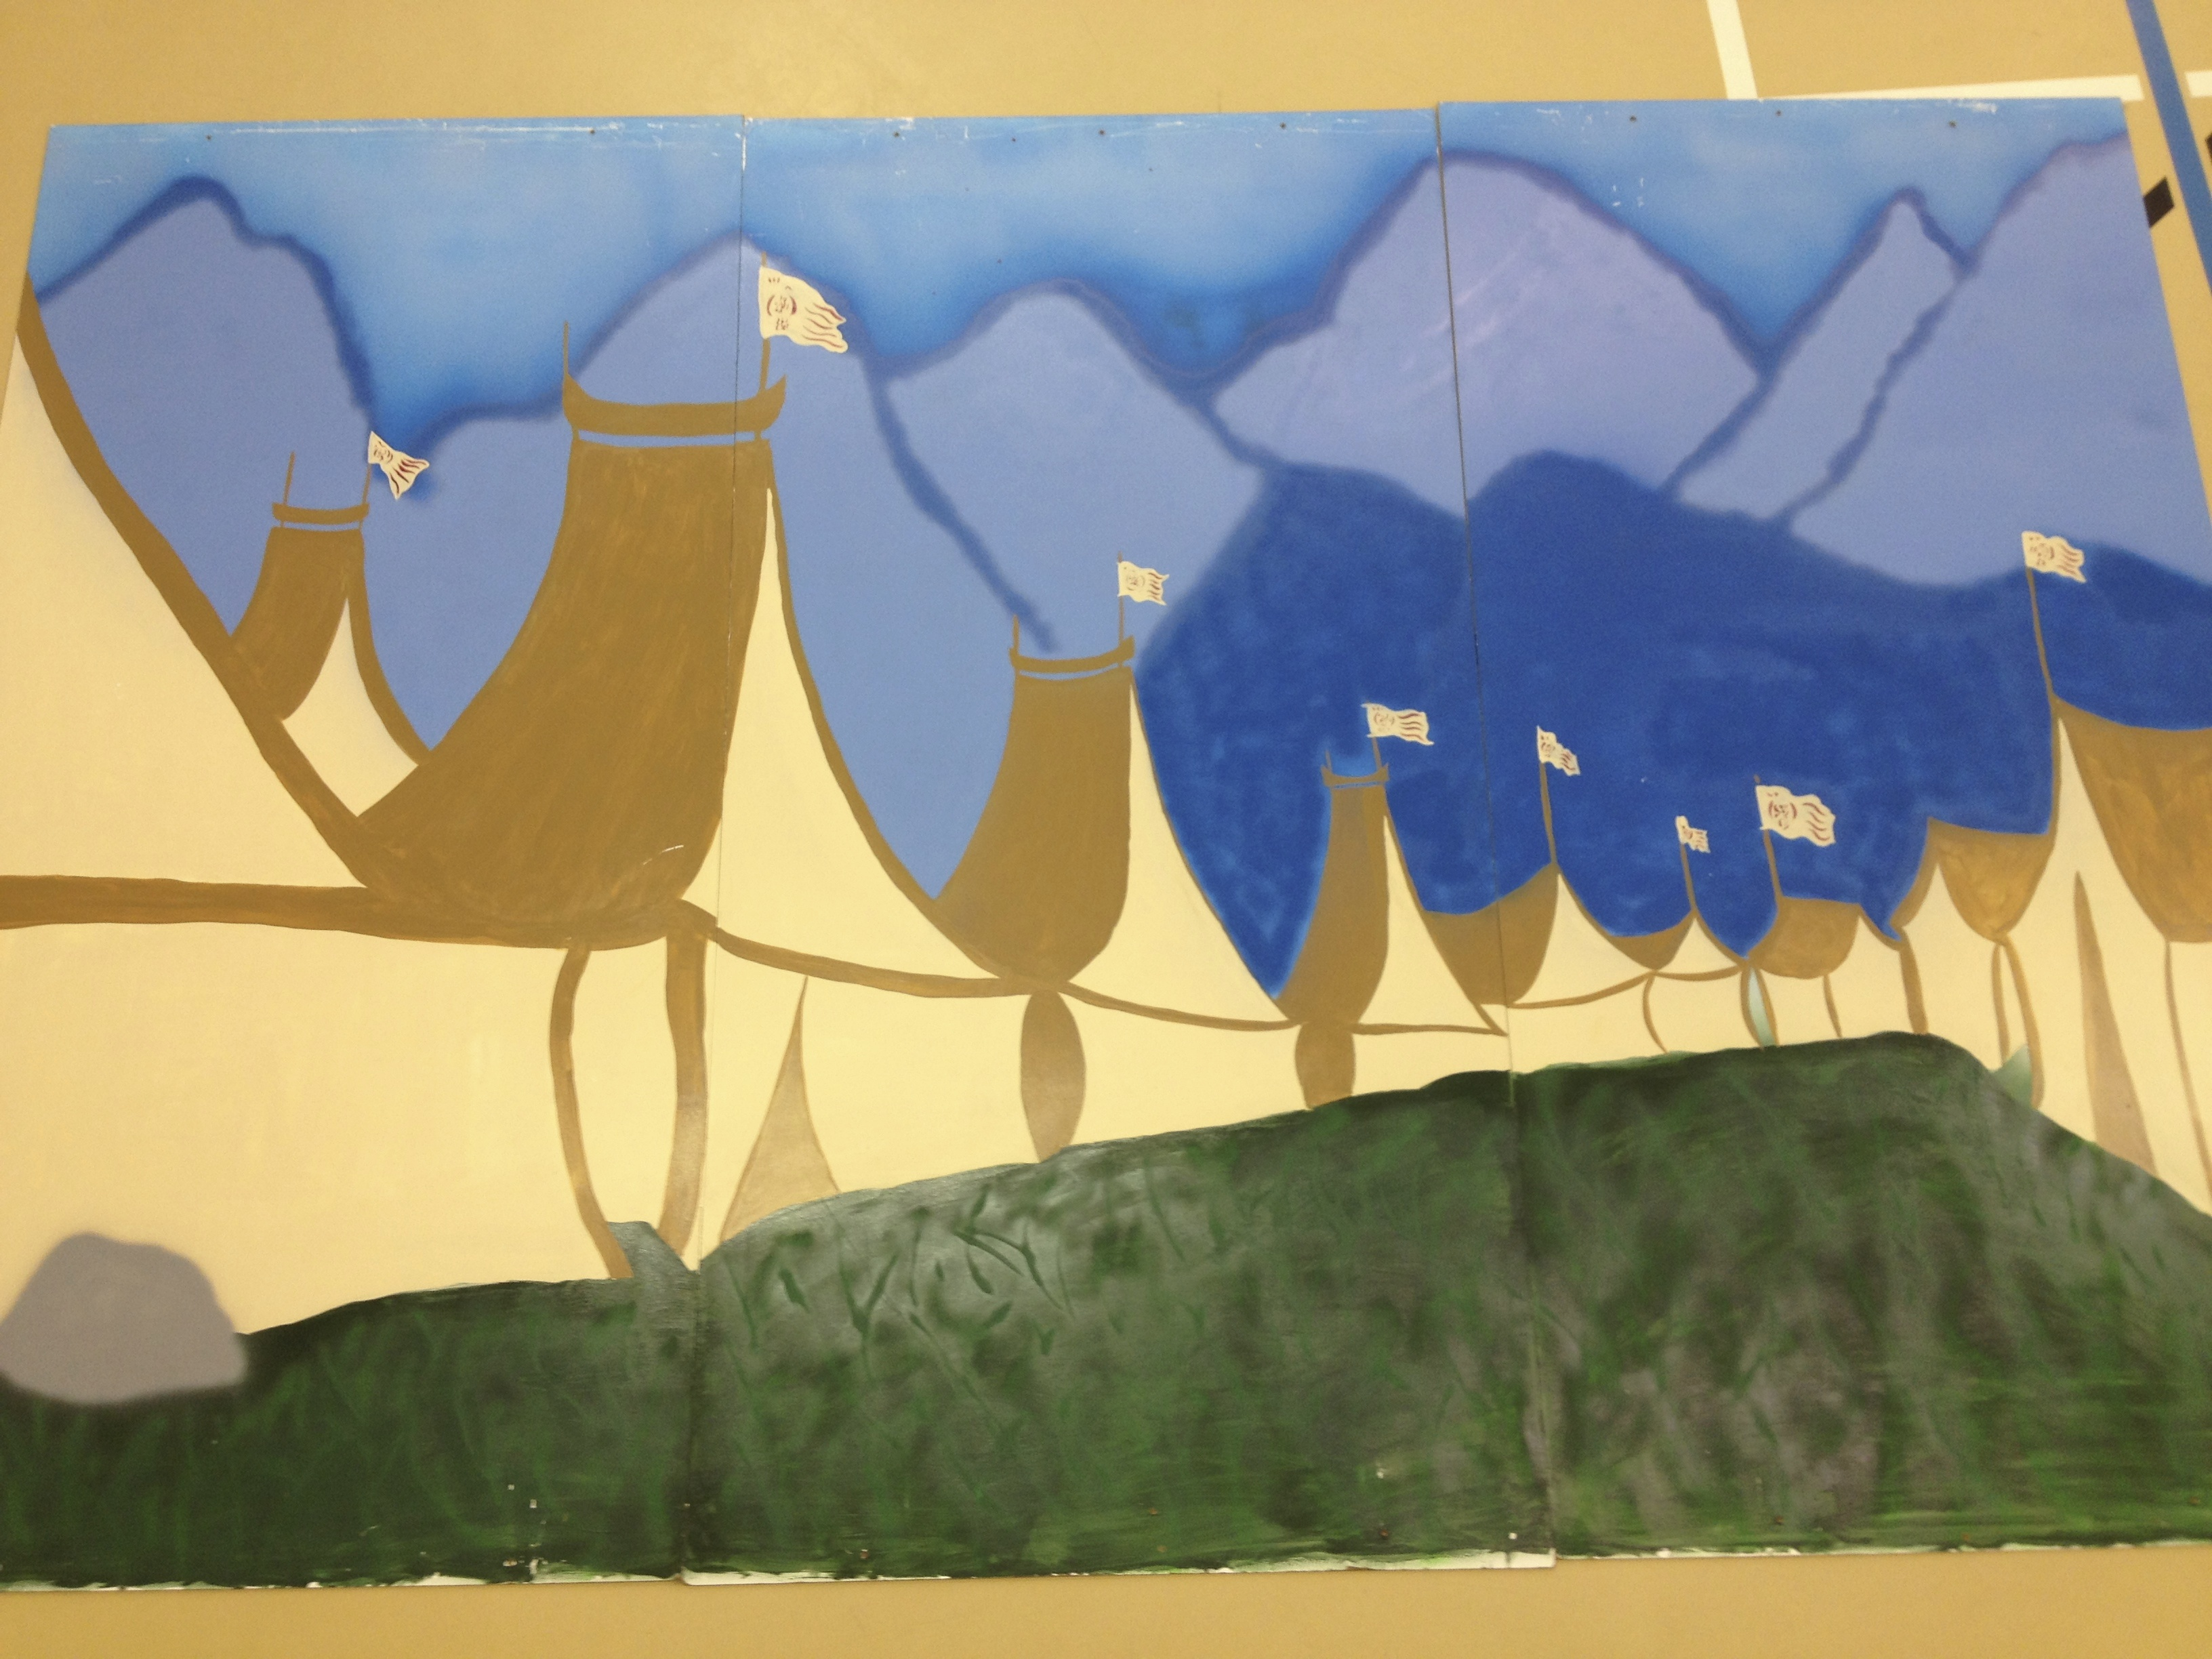 Mulan Wood Panel Backdrop, Camp